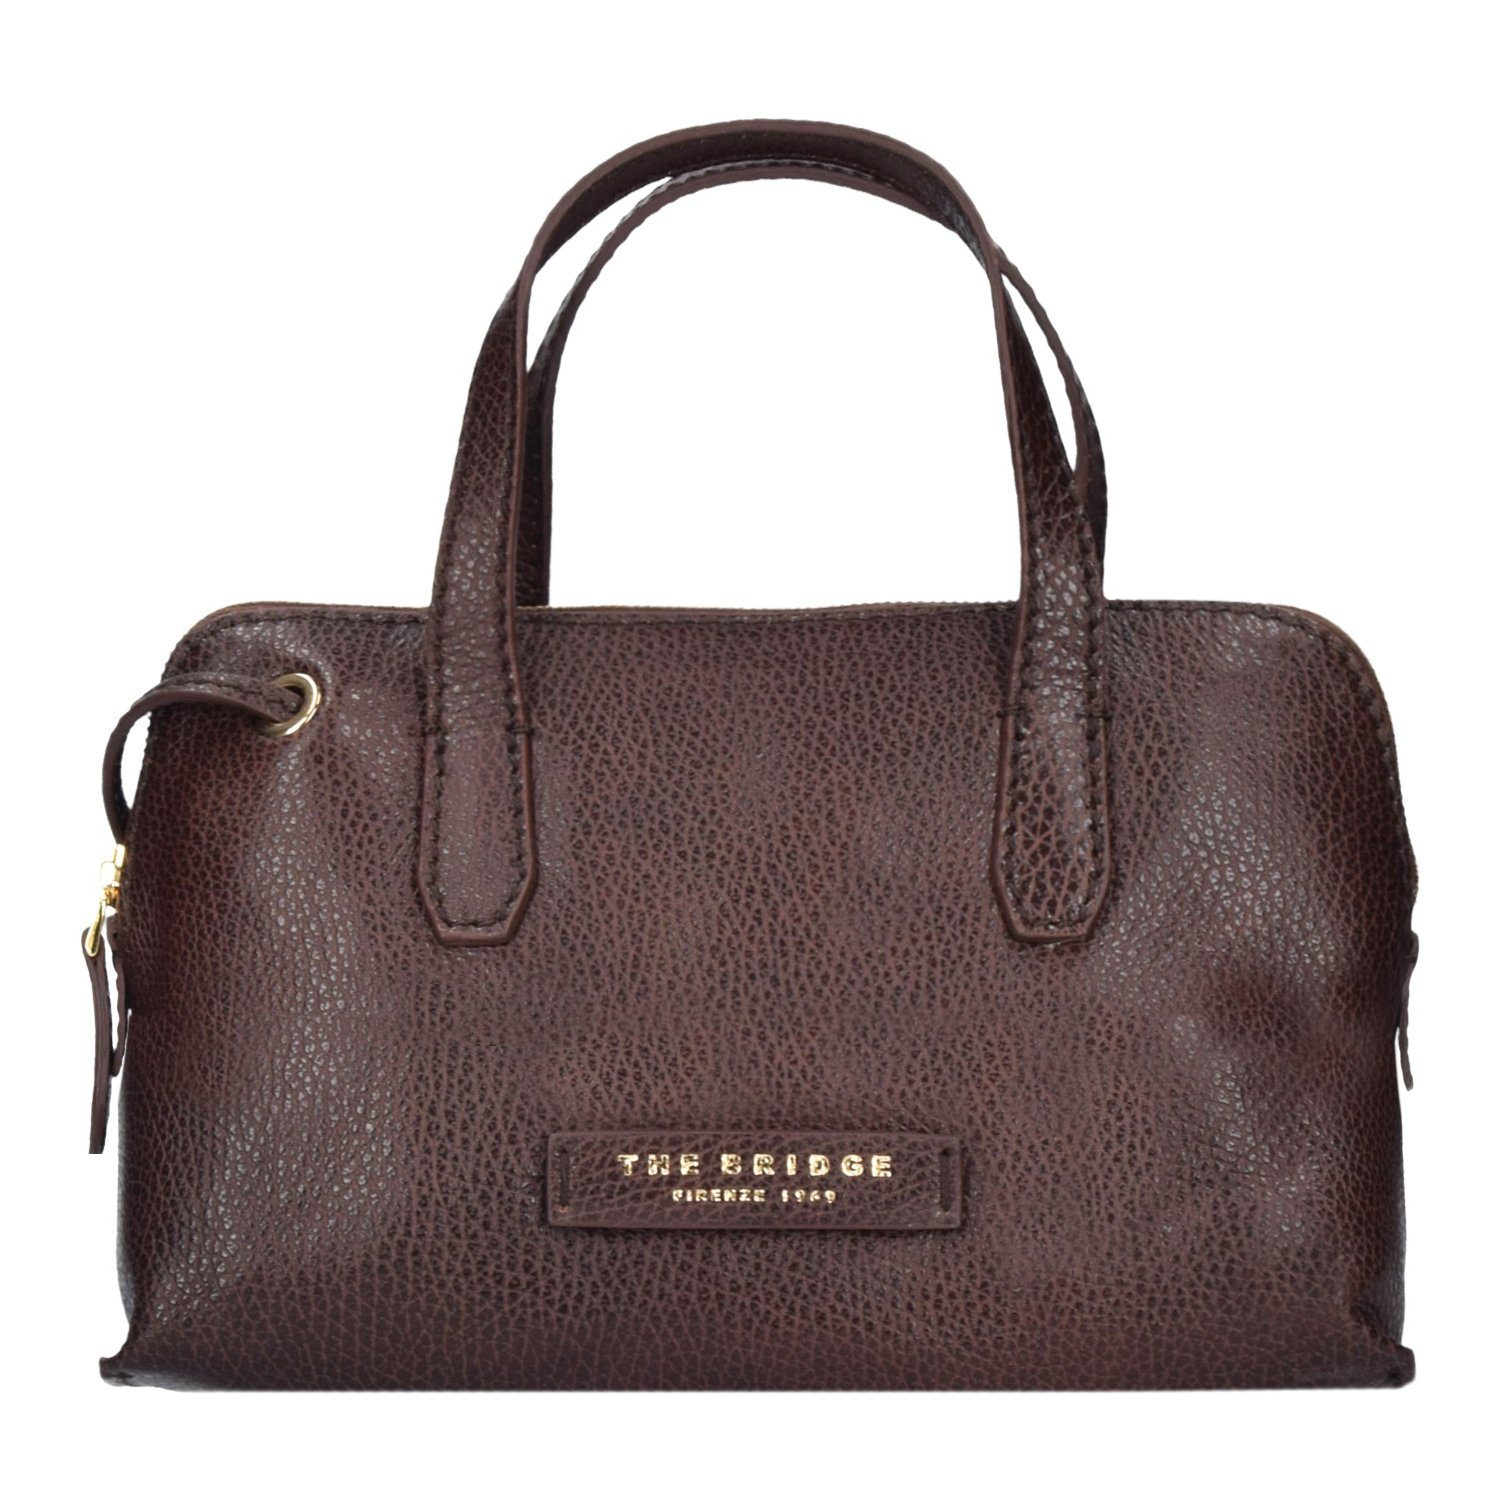 The Bridge The Bridge Plume Soft Donna Umhängetasche Tasche Leder 22,5 cm